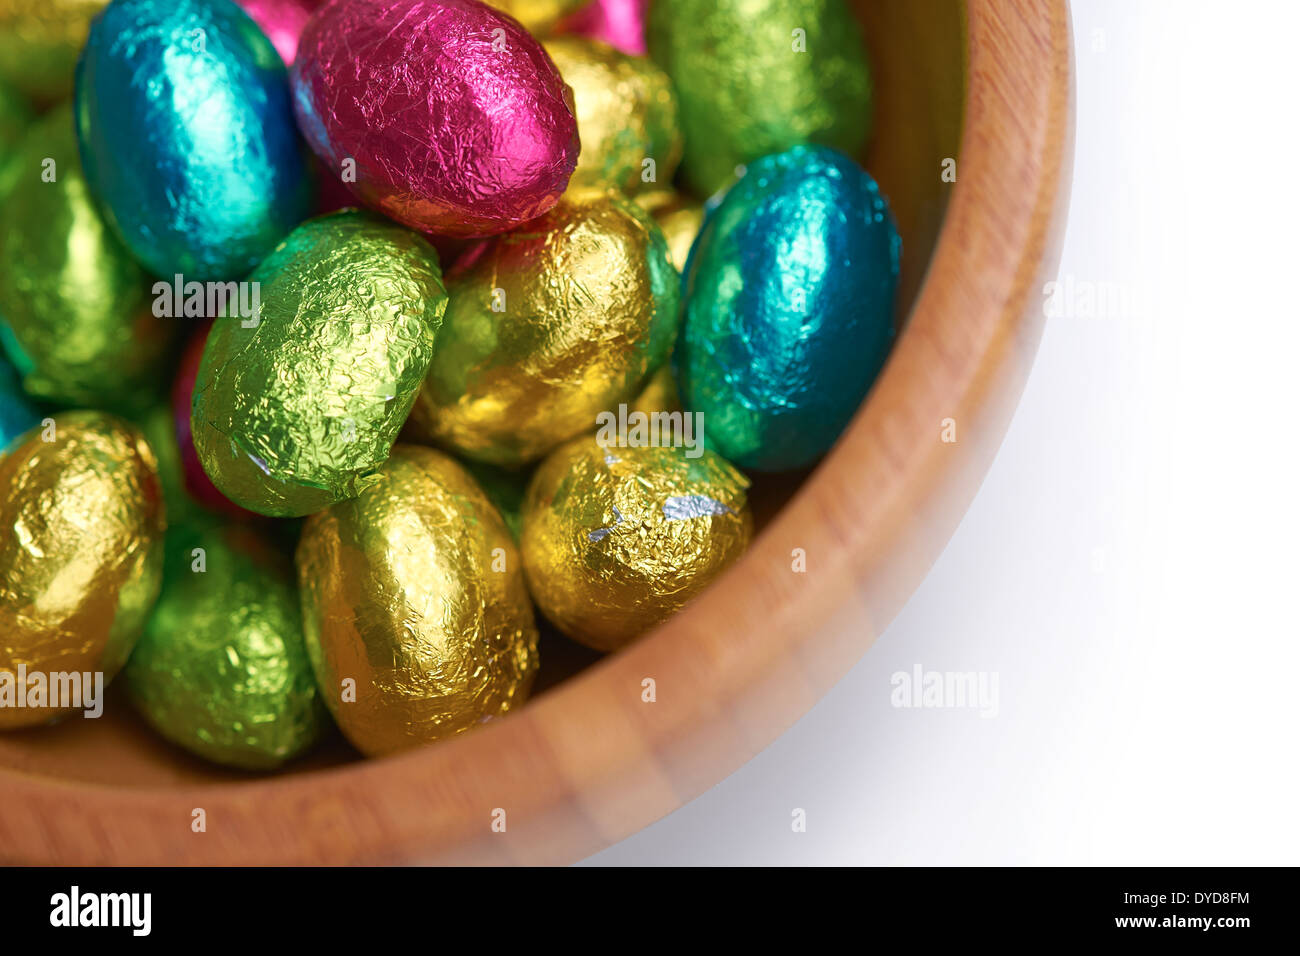 Colouful foil wrapped easter eggs in a bowl on a white isolated background. - Stock Image